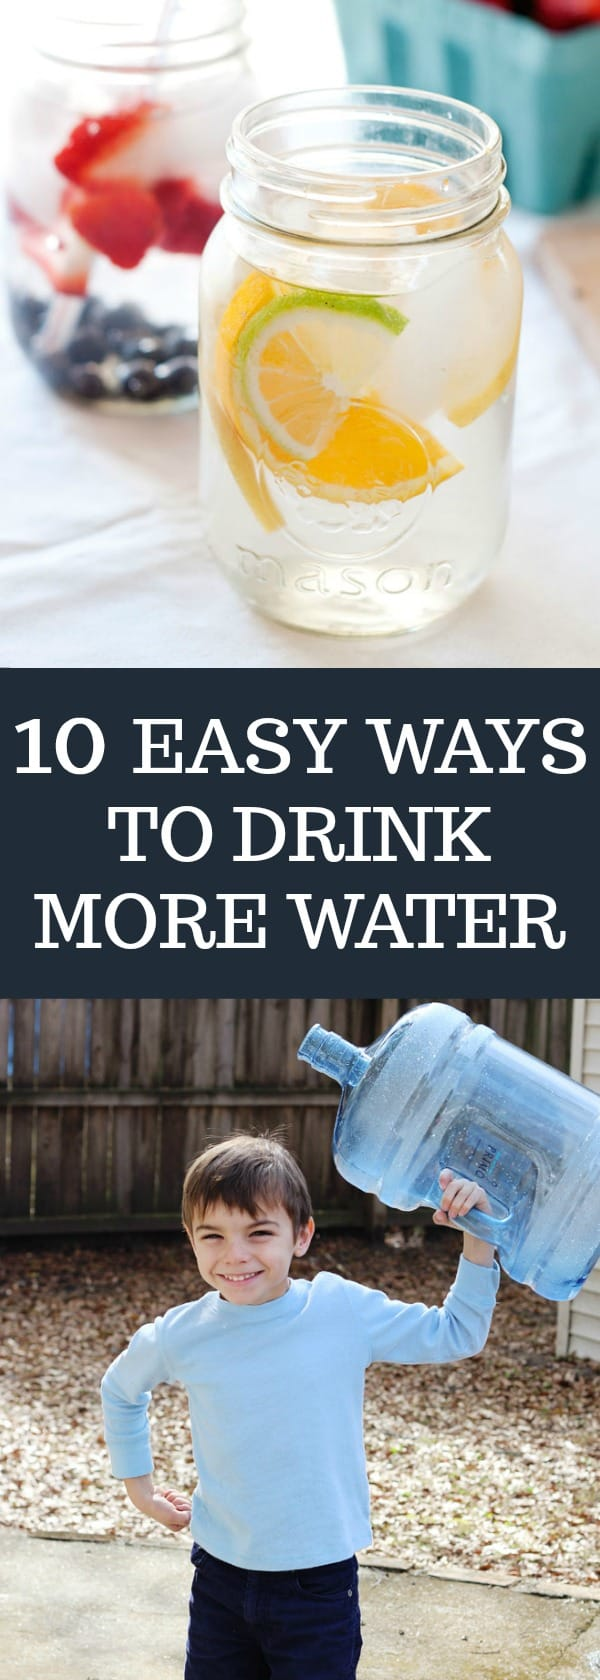 10 Easy tips to get more water throughout your day.